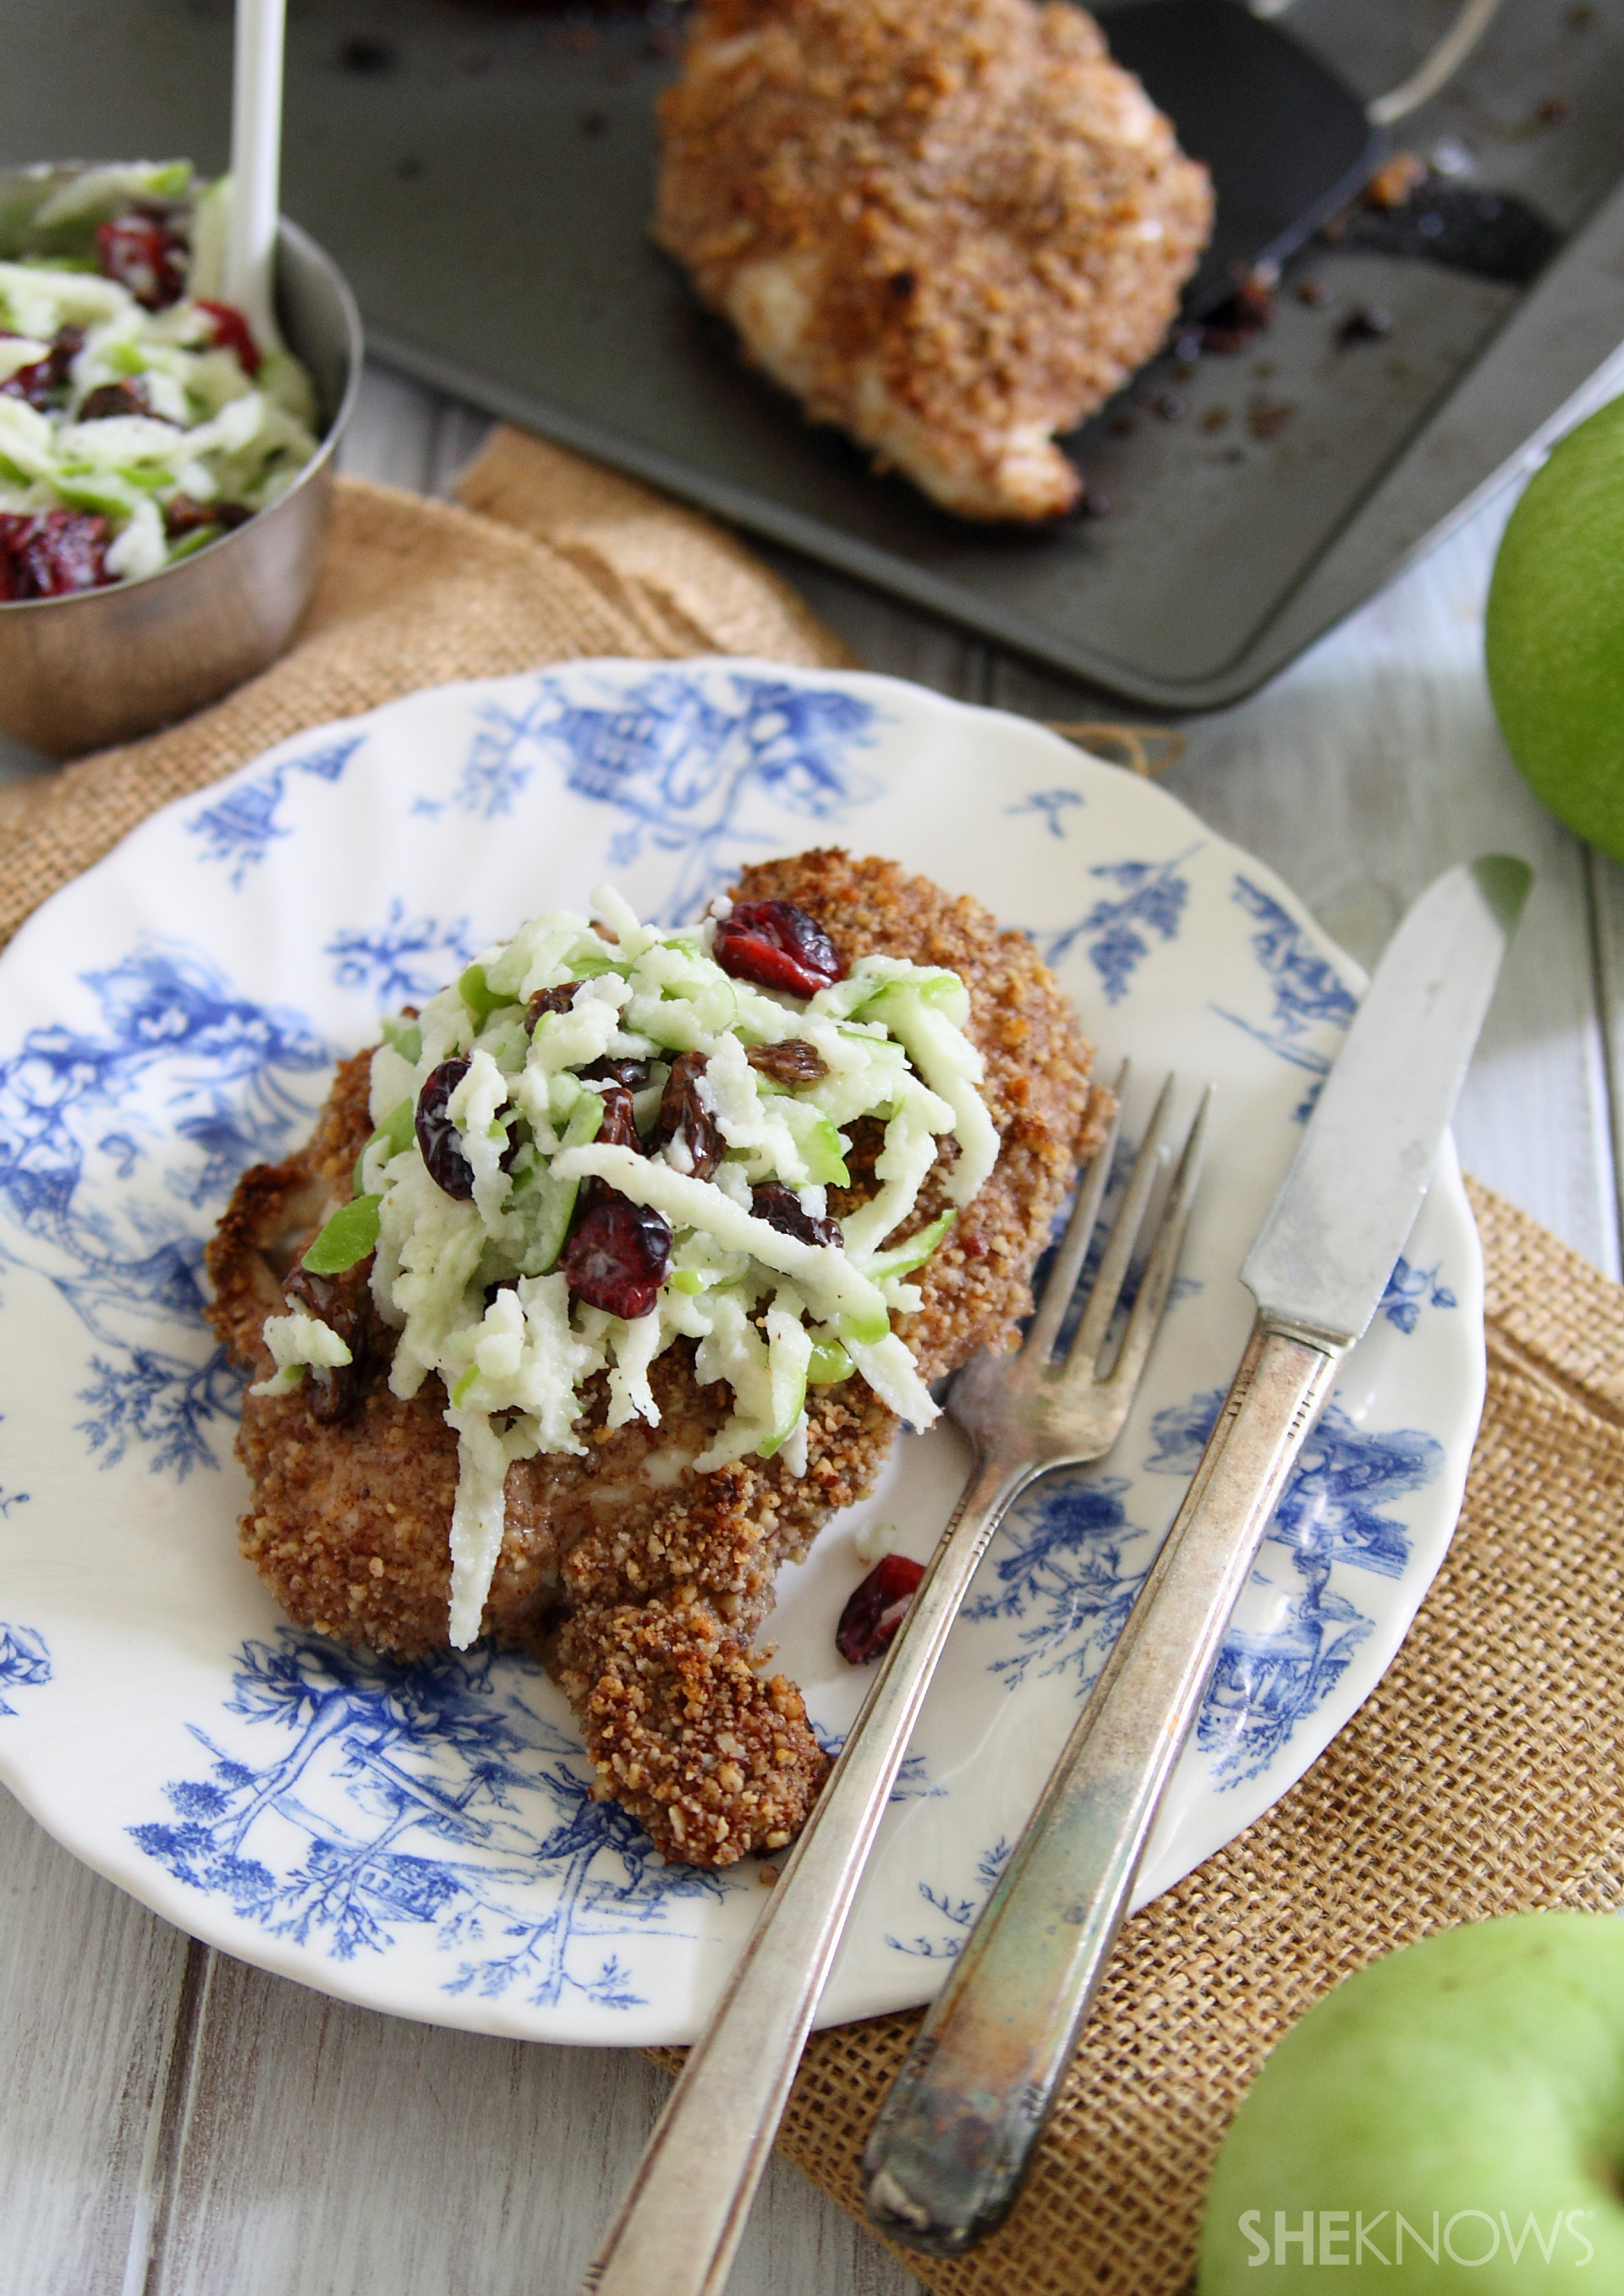 Pecan crusted chicken with green apple slaw